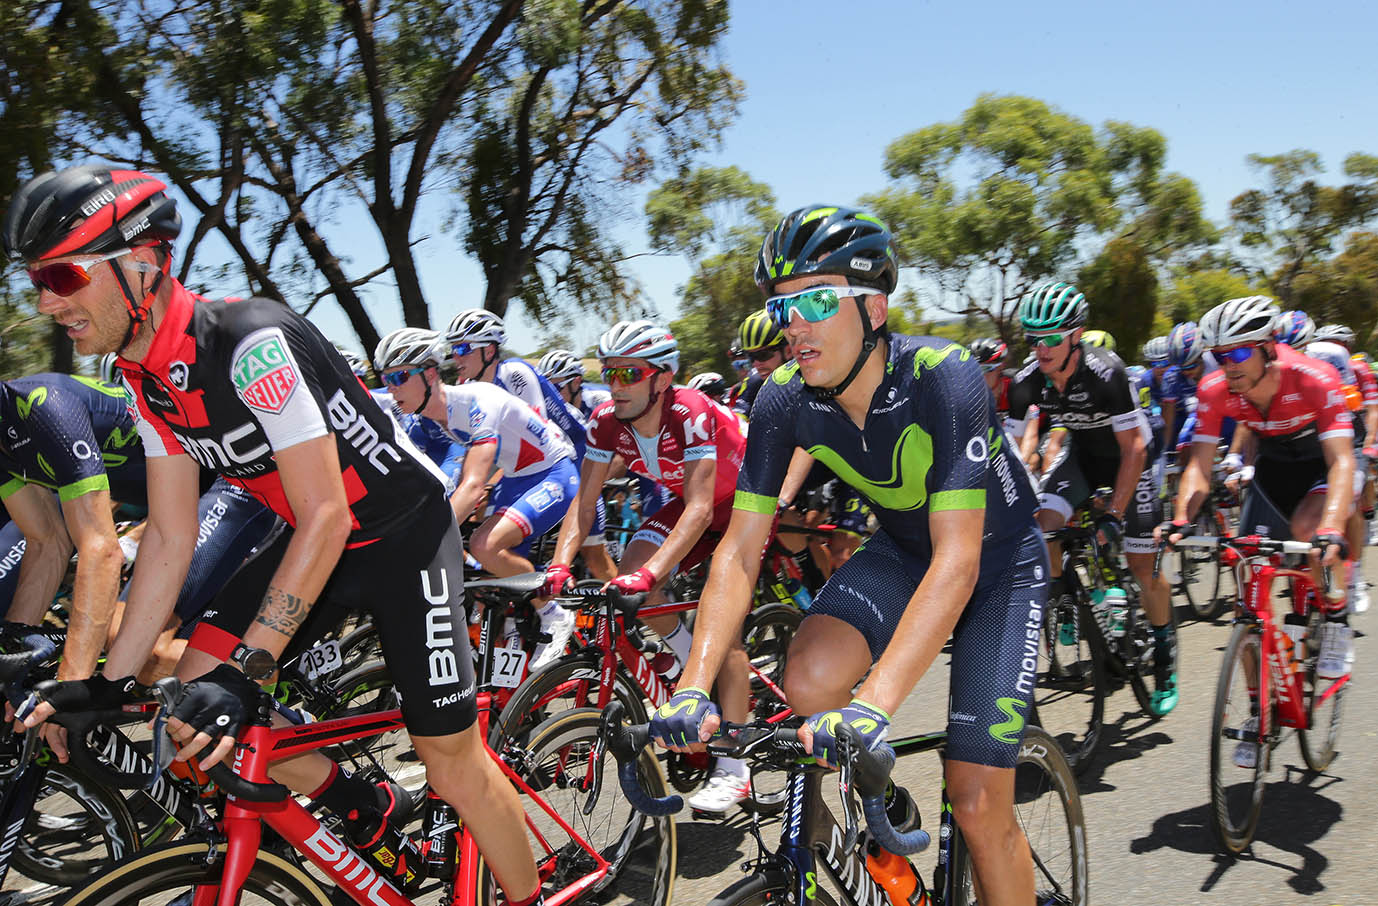 Riders feel the heat on a 43 degrees day on Hostworks stage 1